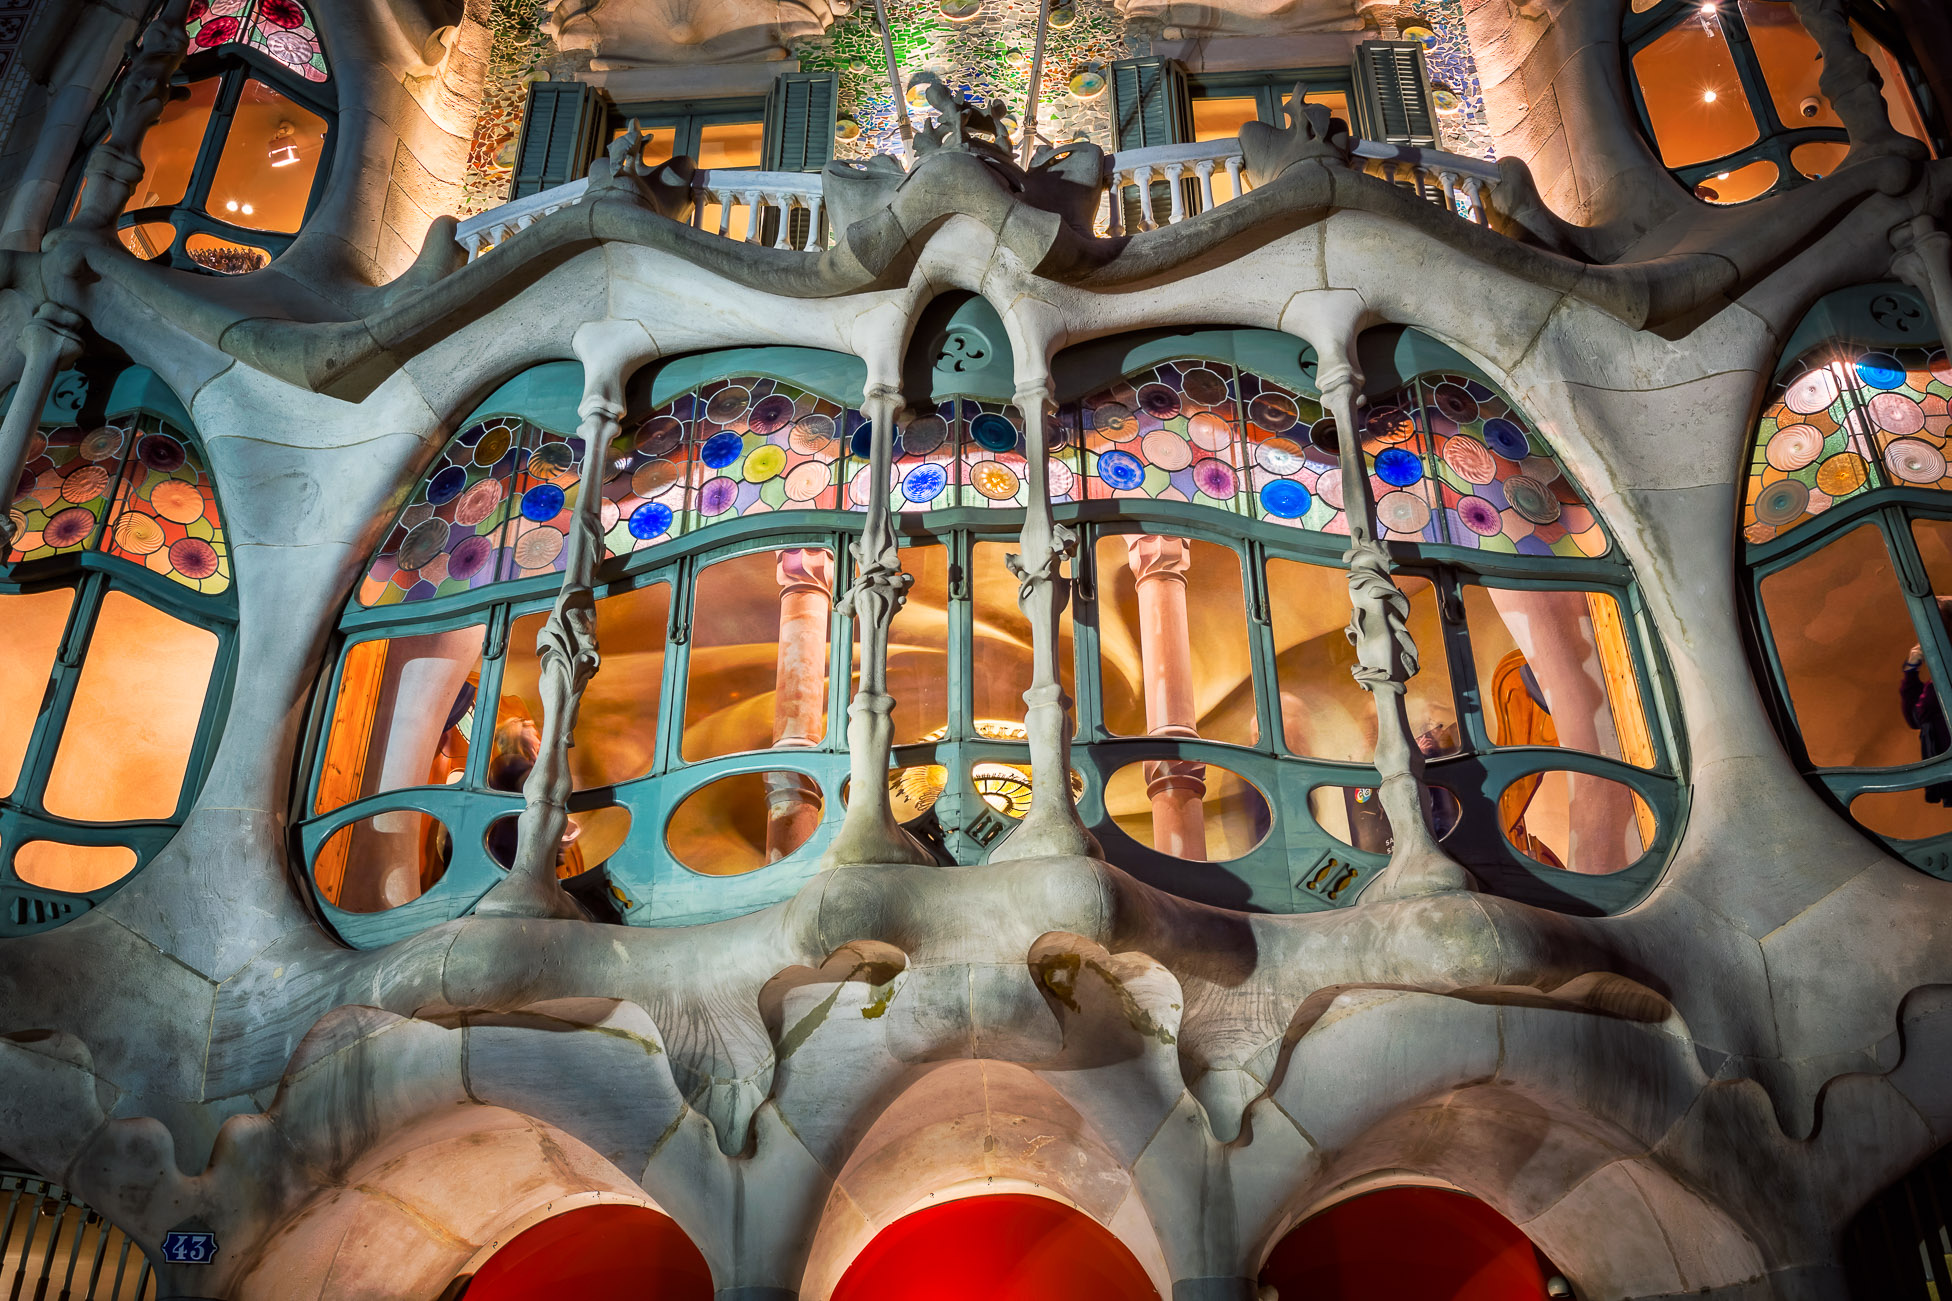 Illuminated Casa Batllo Facade, designed by Antonio Gaudi, Barcelona, Spain